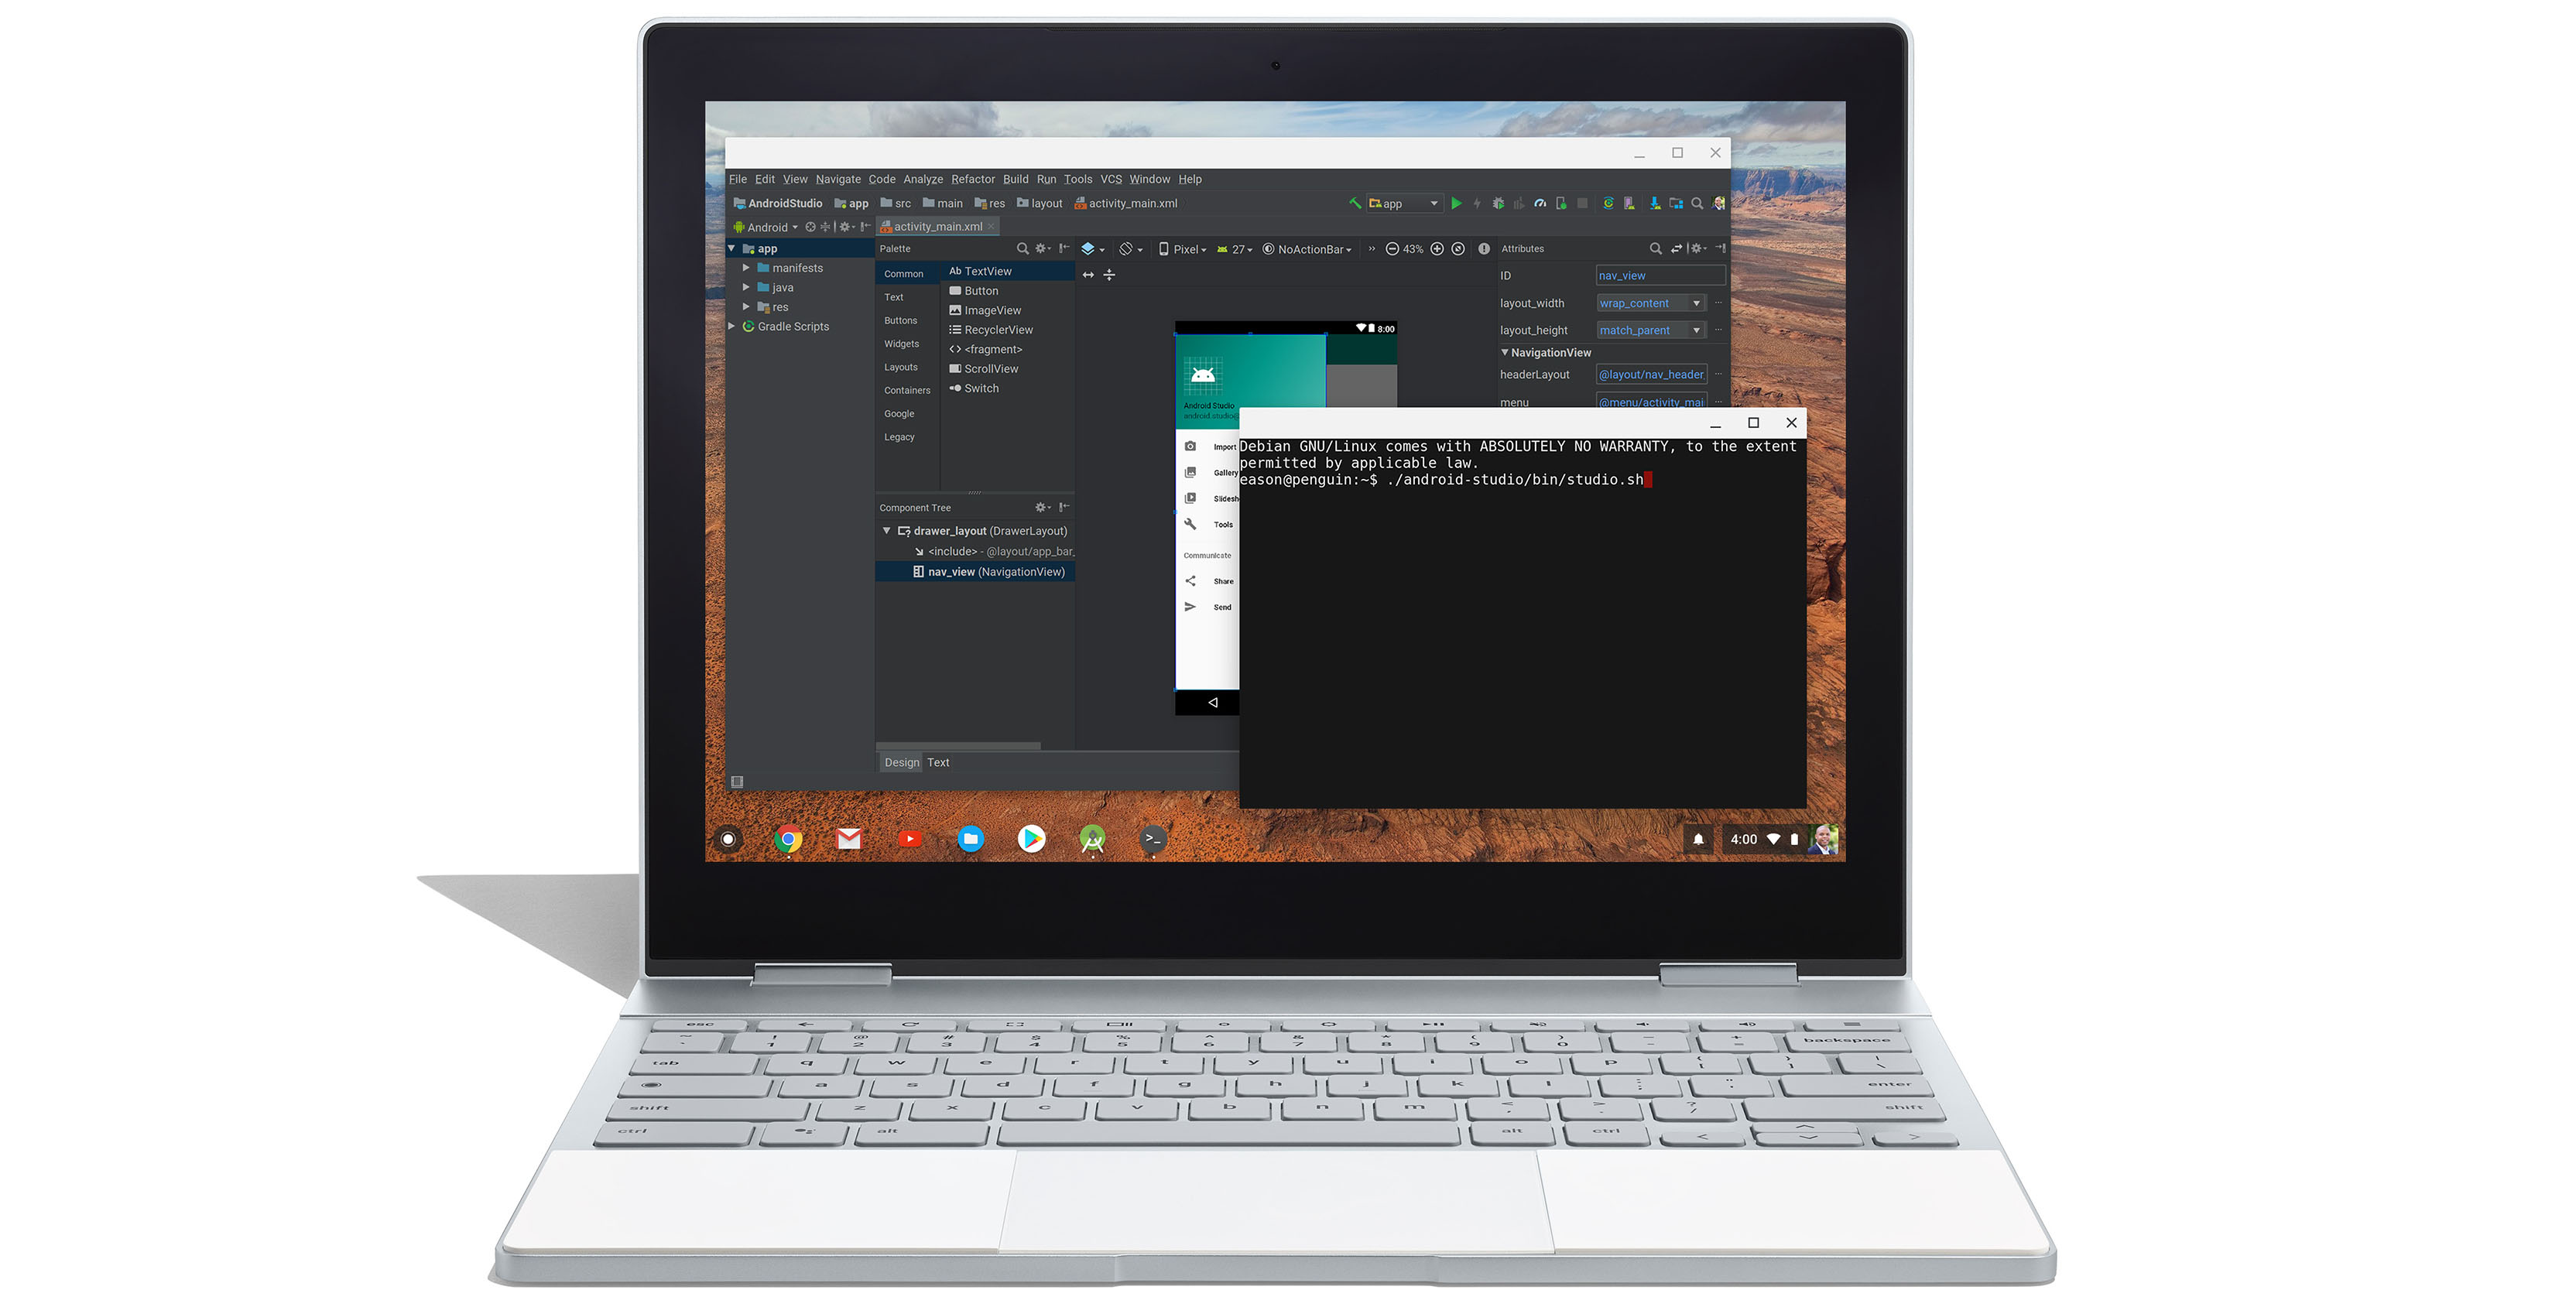 Android Studio on Chrome OS